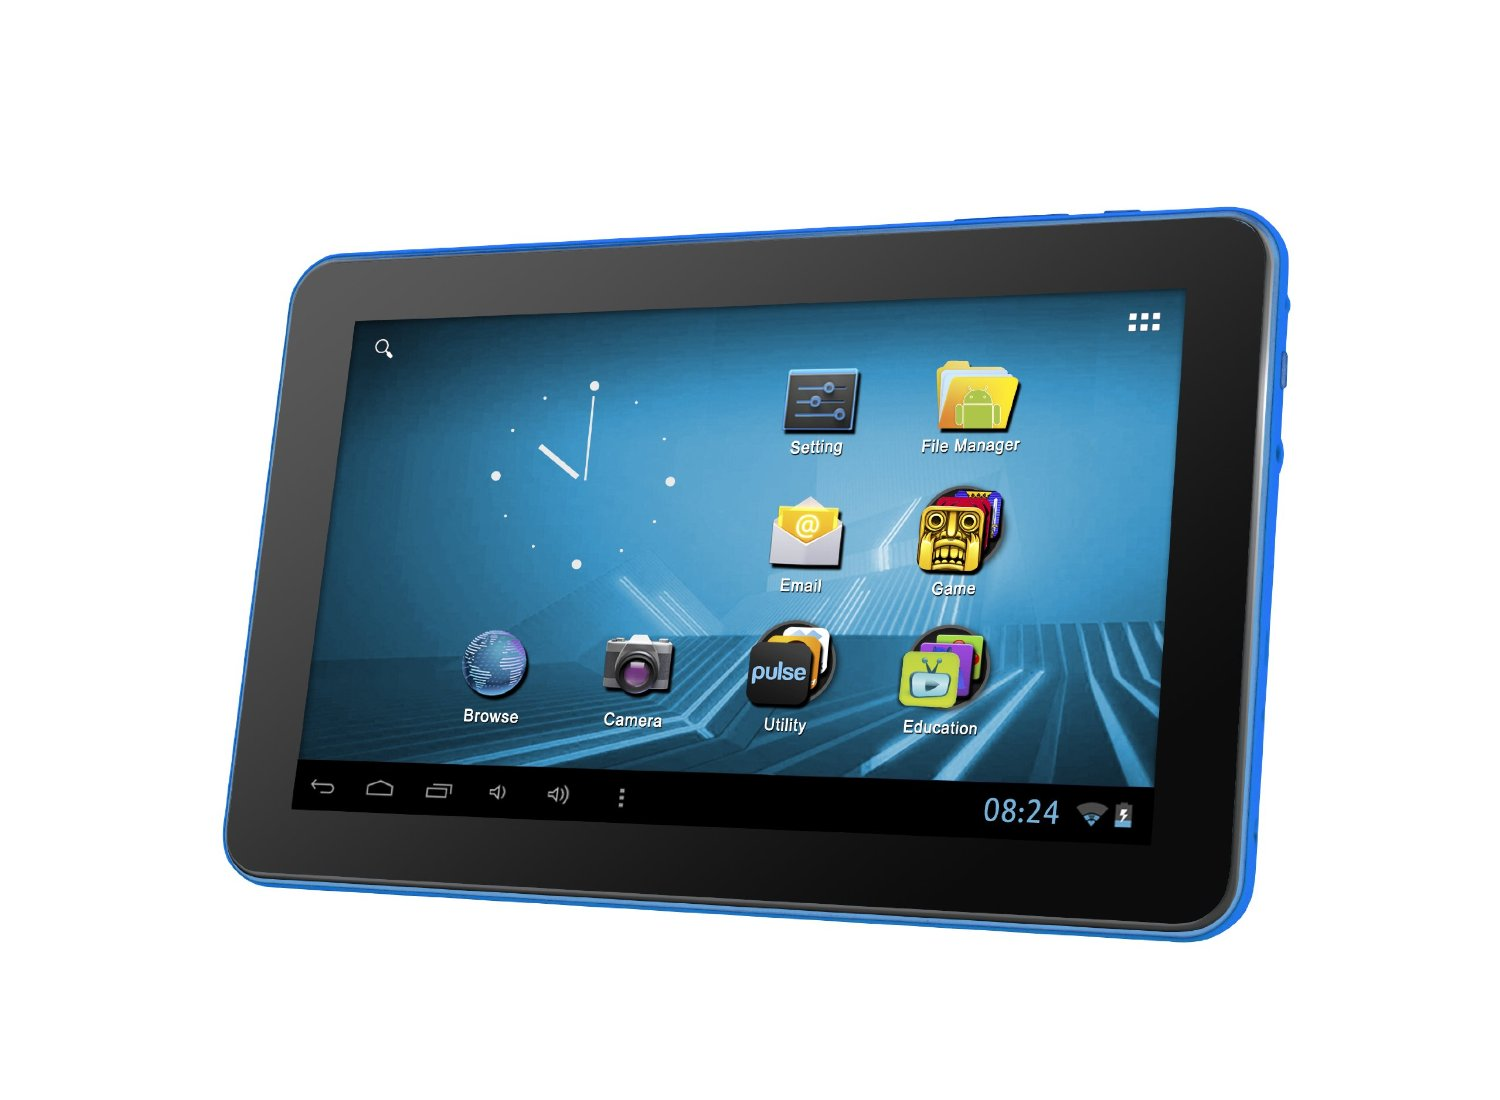 d2 pad d2 912 9 tablet android 41 jelly 4gb bean 10ghz 512mb